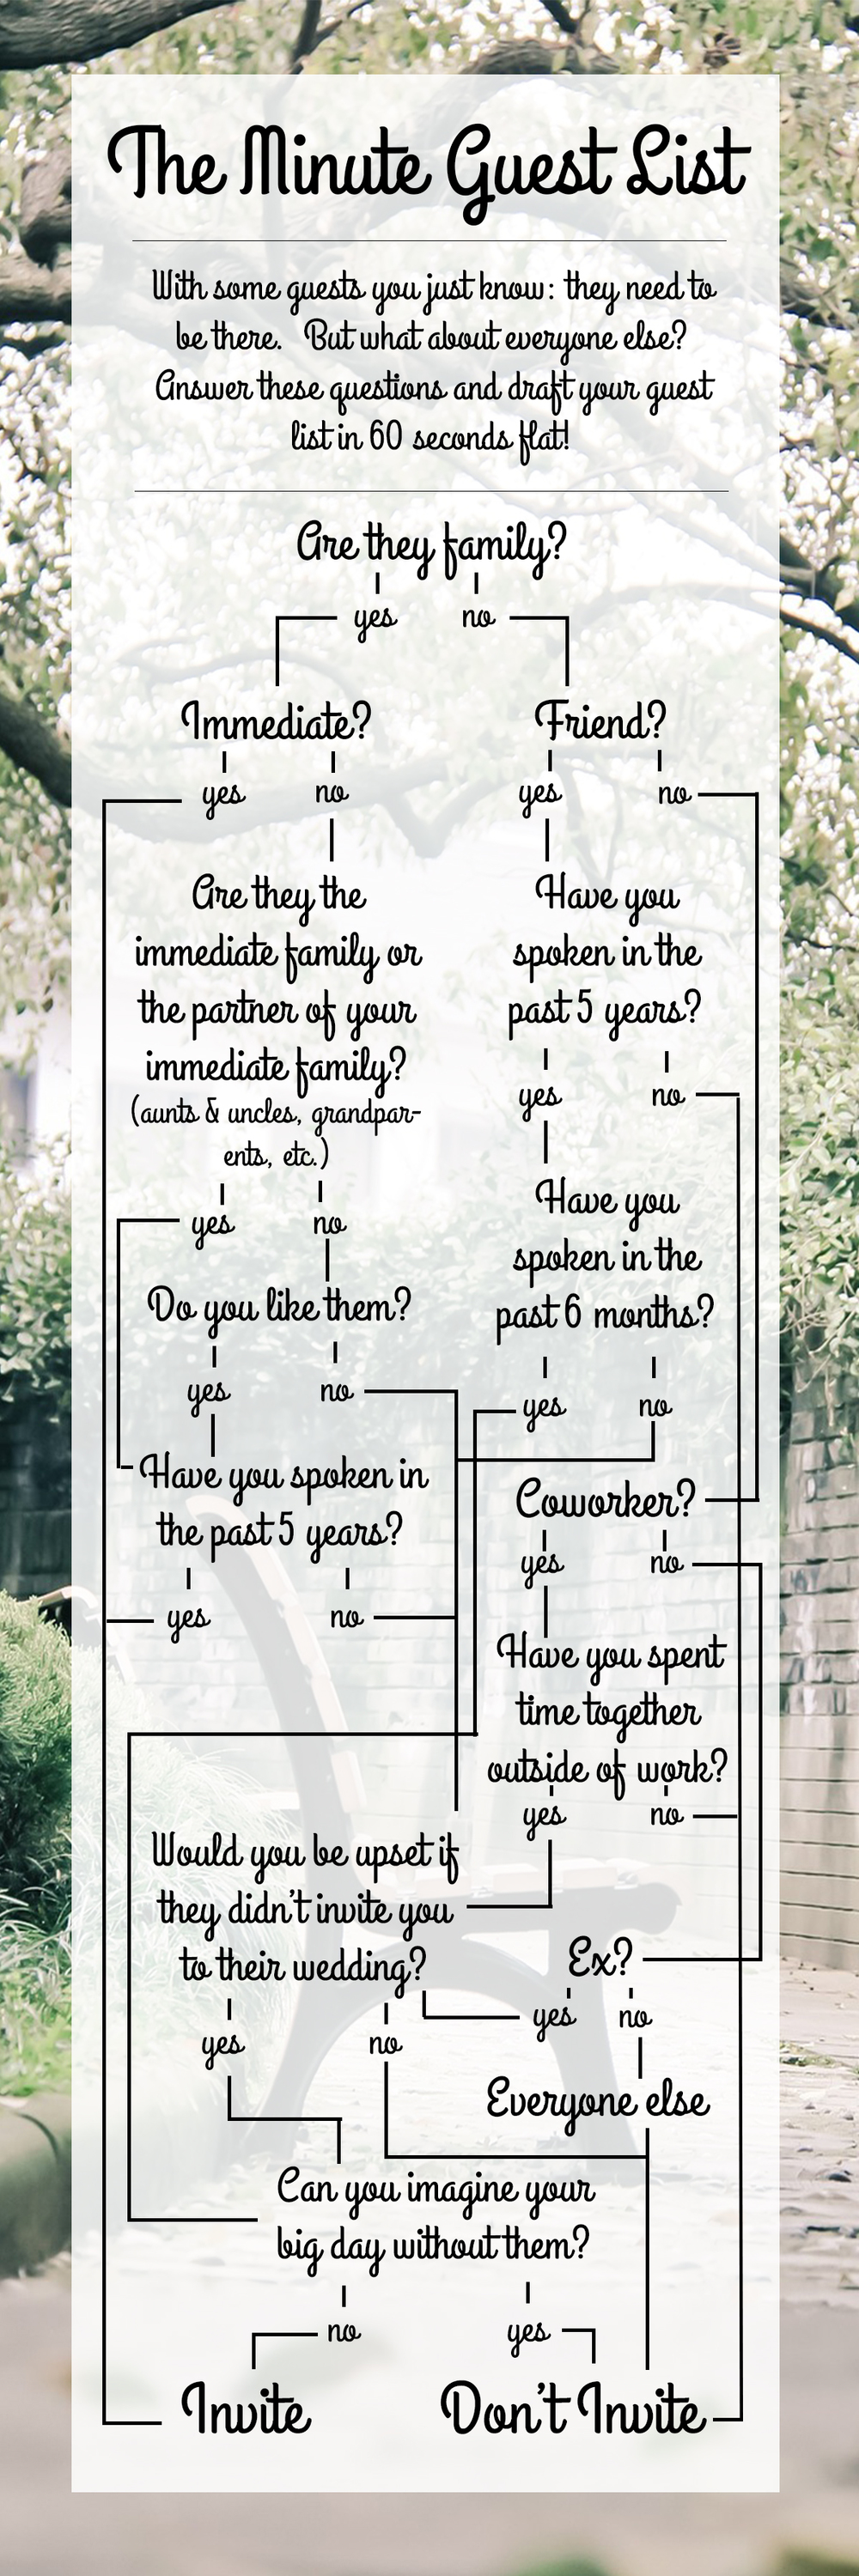 The Minute Wedding Guest List Plant Based Bride